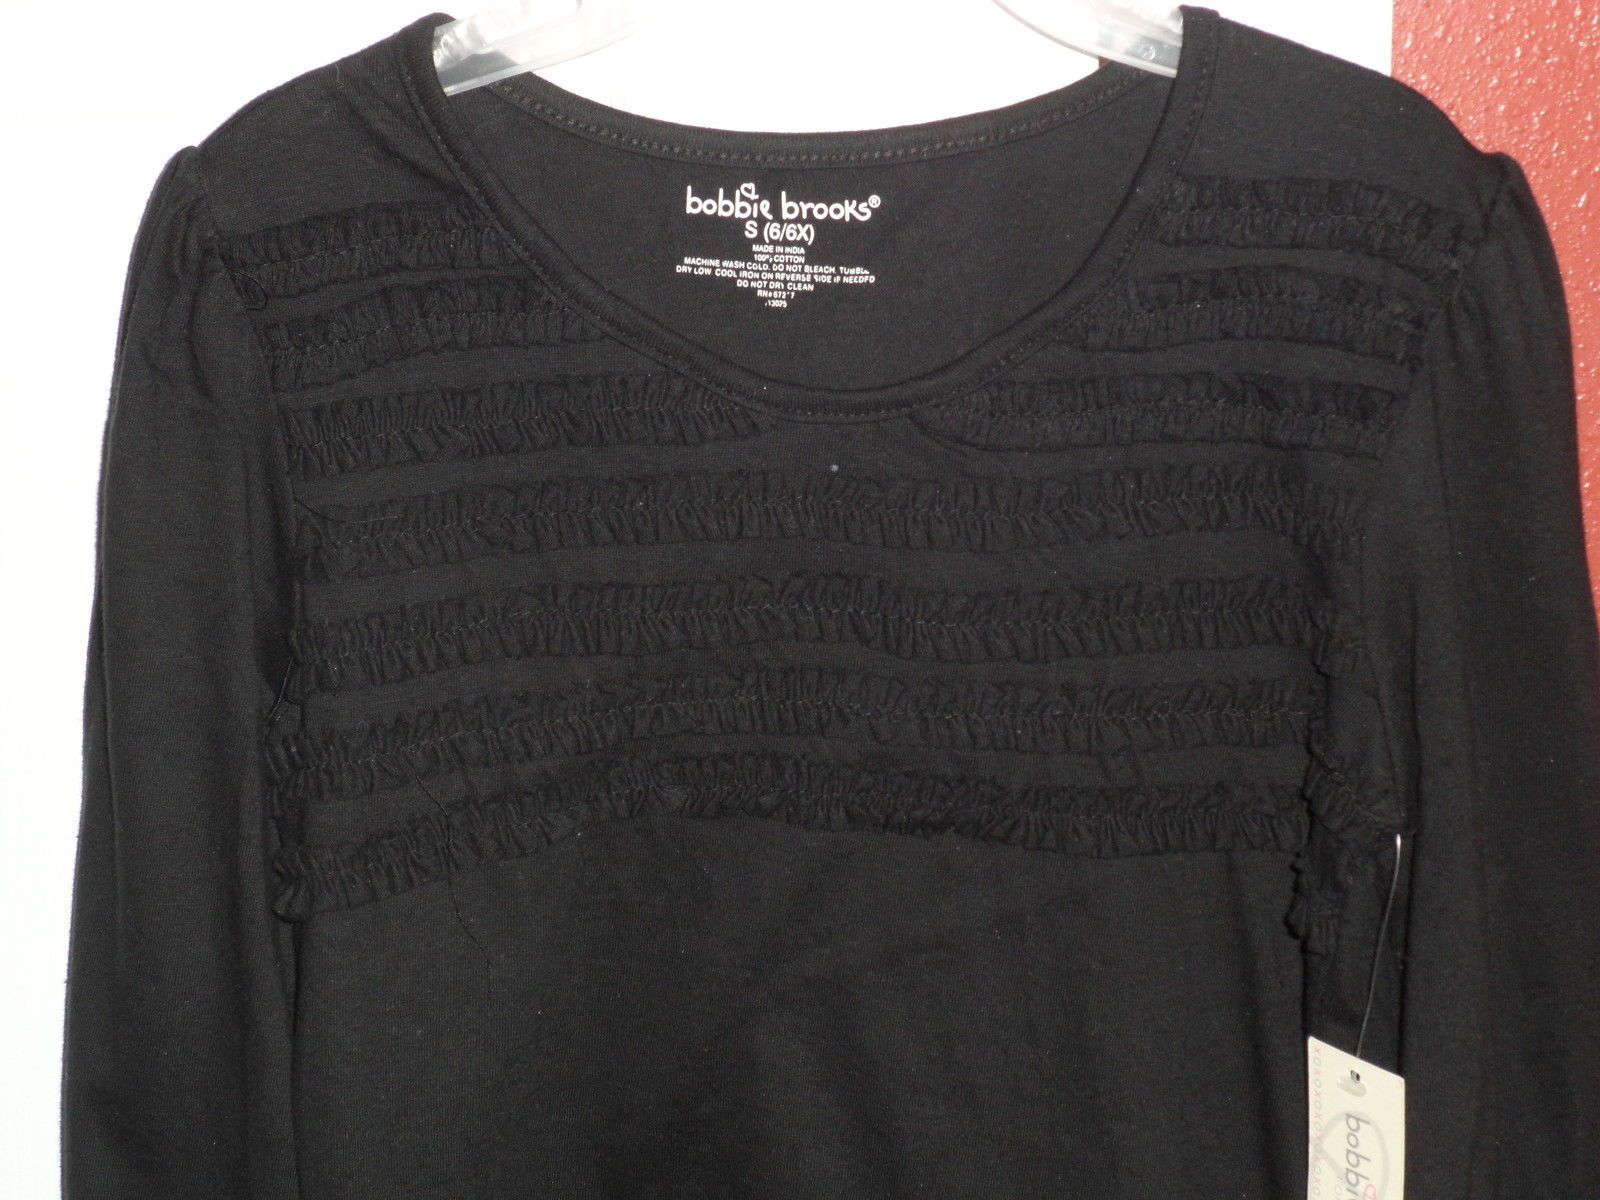 f80fca7bc1911 BOBBIE BROOKS KNIT TOP SHIRT SIZE M 7 8 BLACK RICK RACK NWT